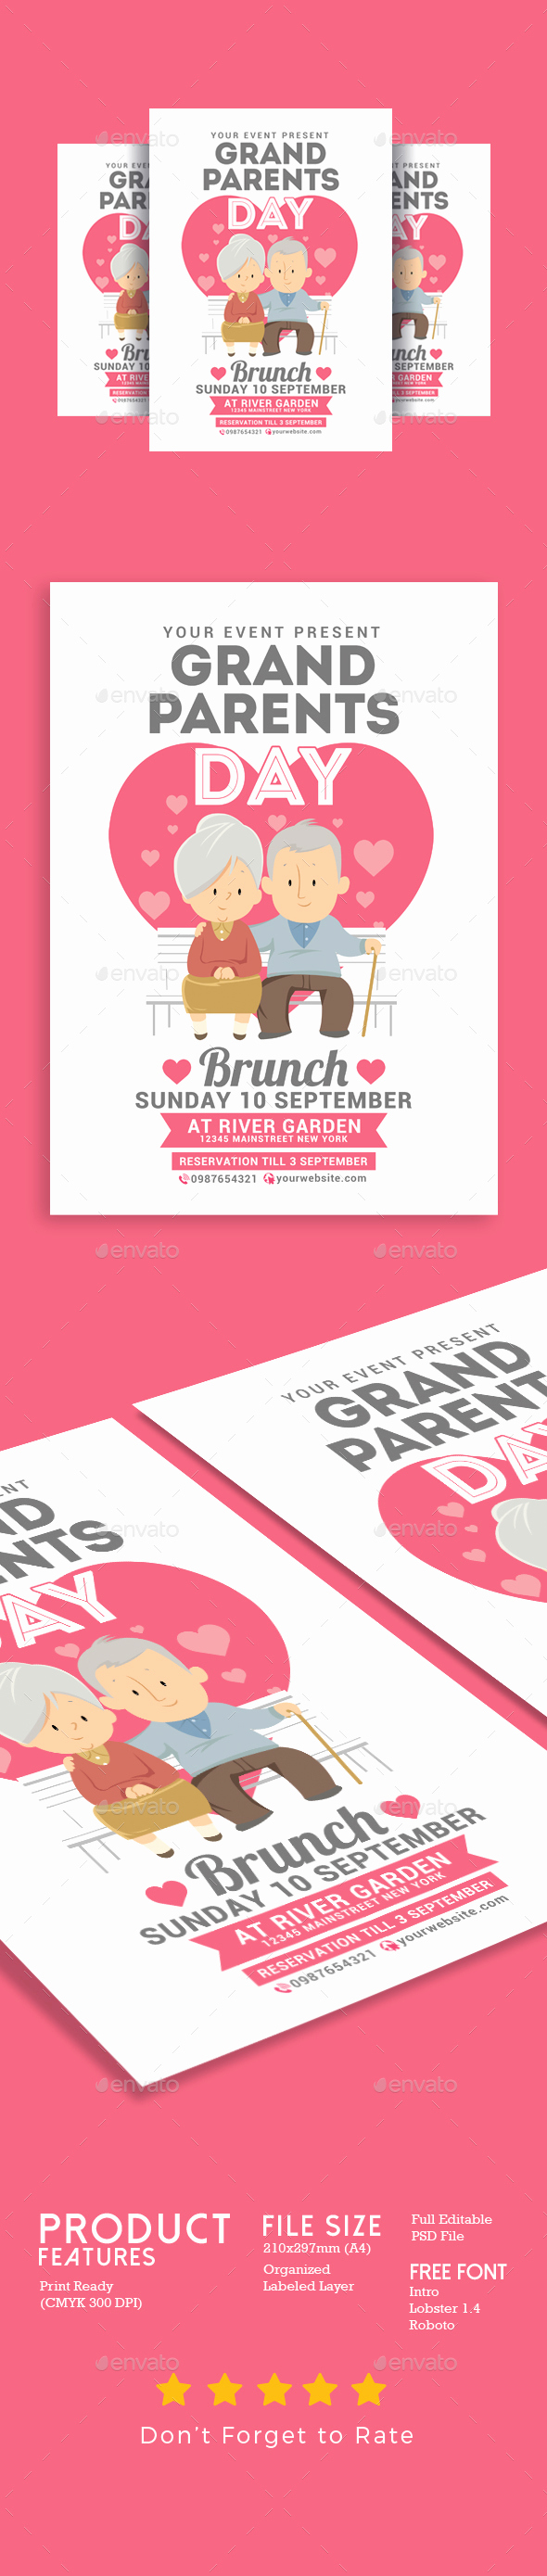 Grandparents Day Invitation Template Fresh Grandparents Day Brunch by Muhamadiqbalhidayat2